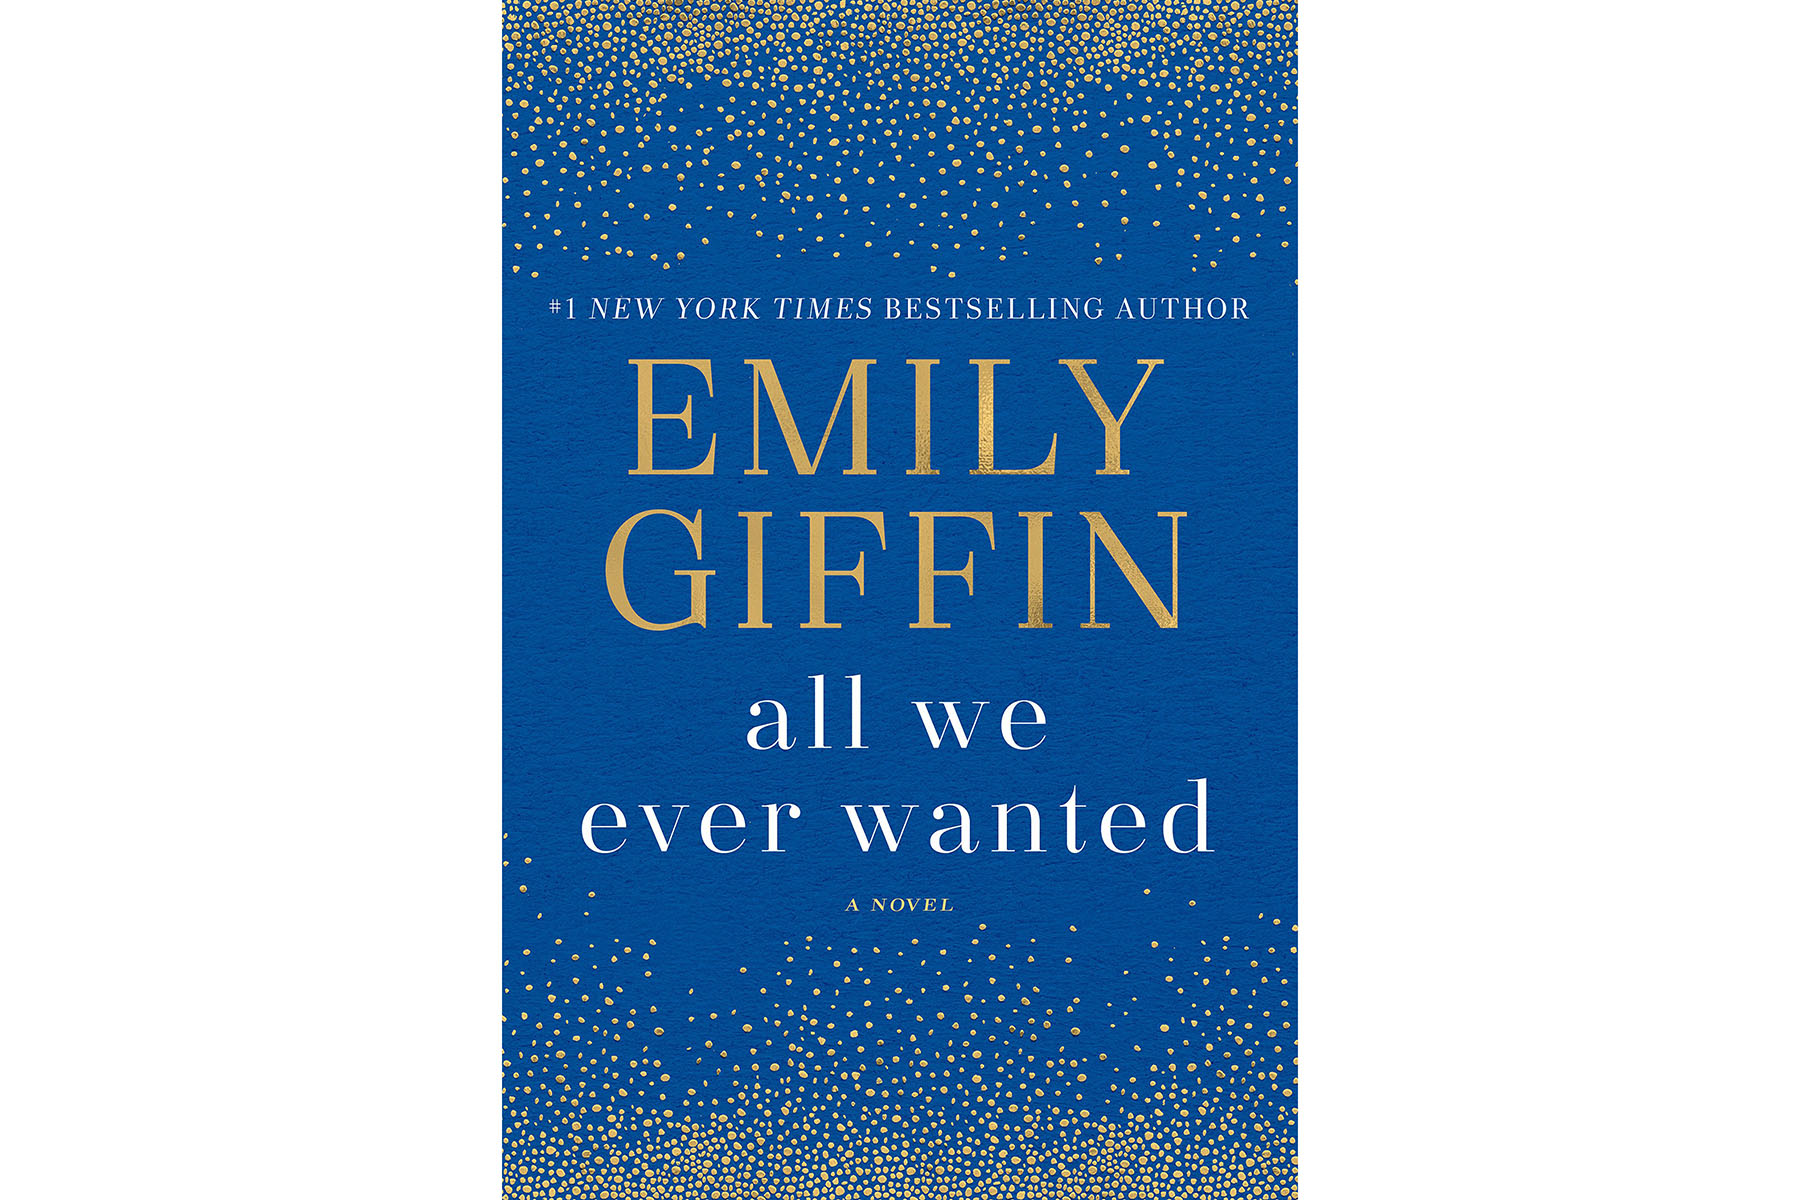 Airplane Books All We Ever Wanted, by Emily Giffin